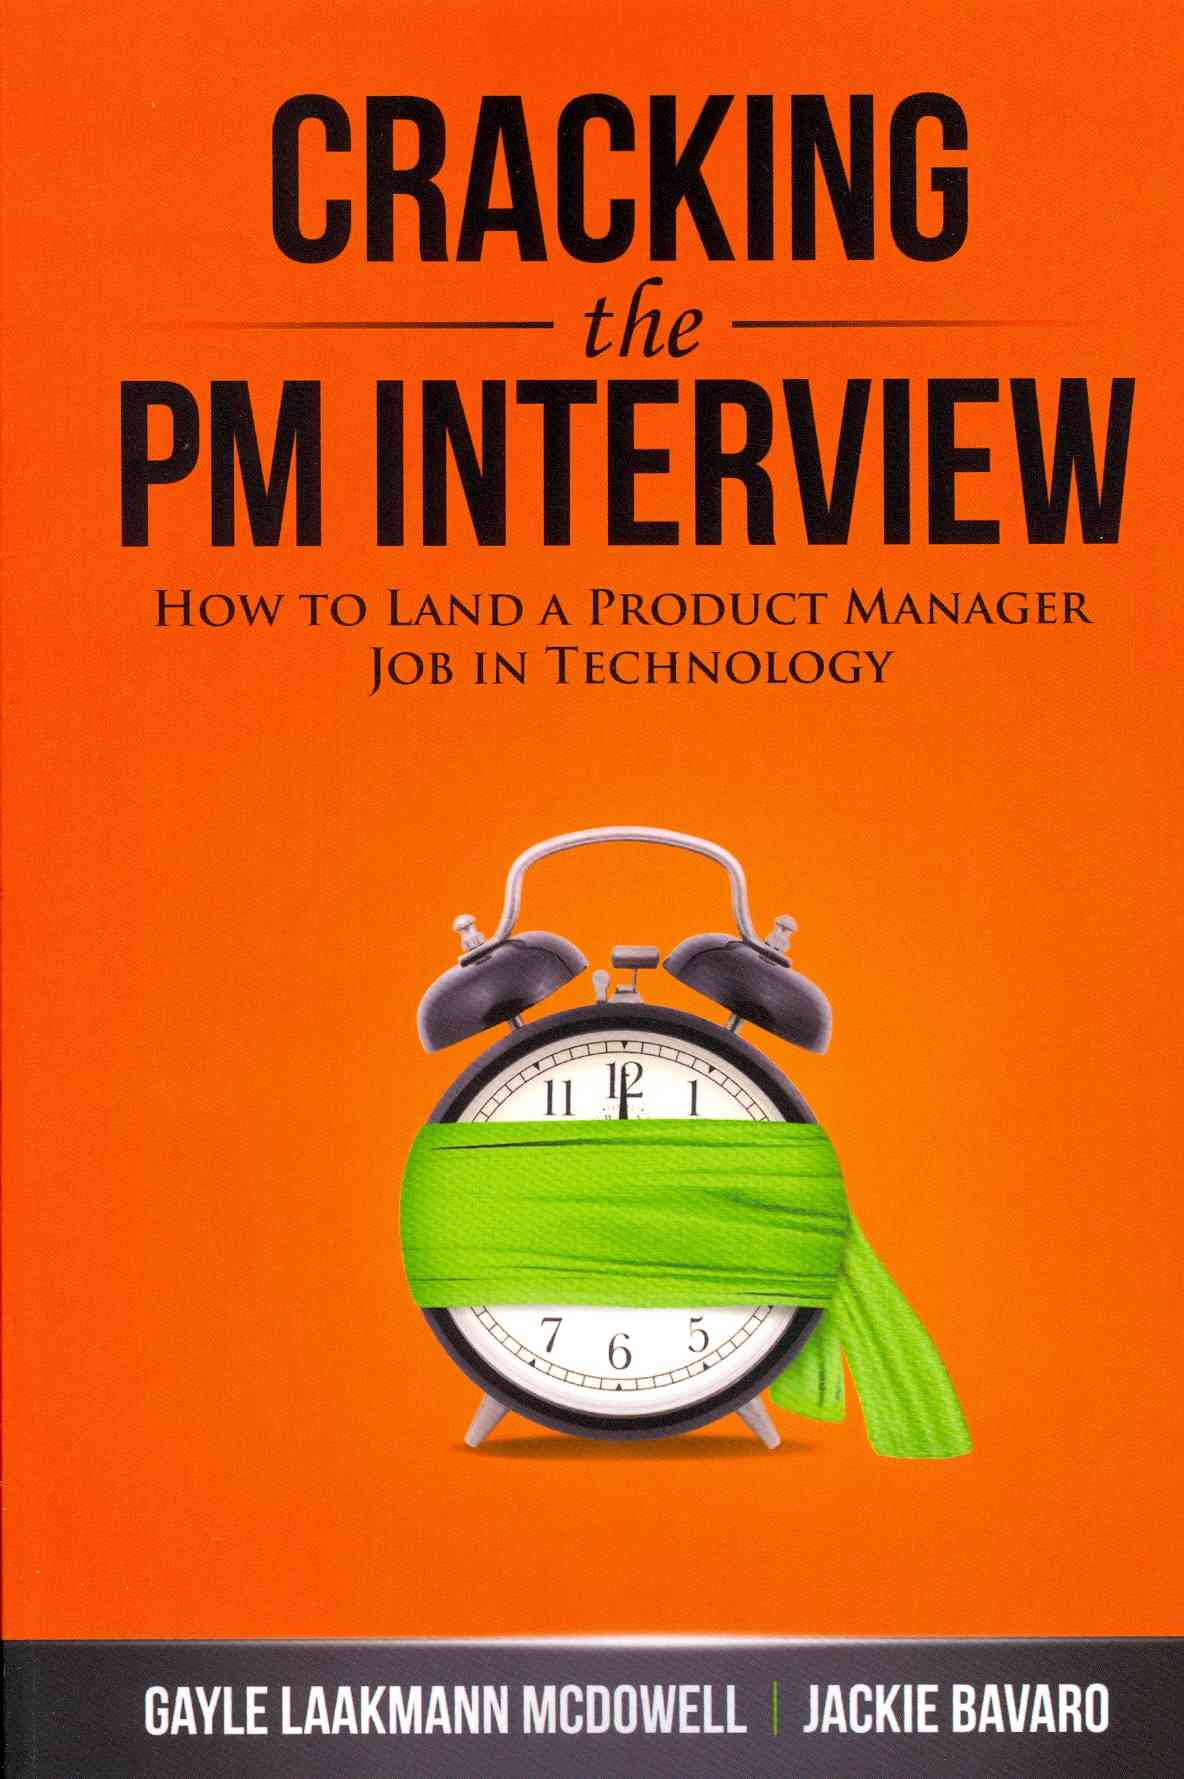 Cracking the PM Interview: How to Land a Product Manager Job in Technology by Gayle Laakmann McDowell